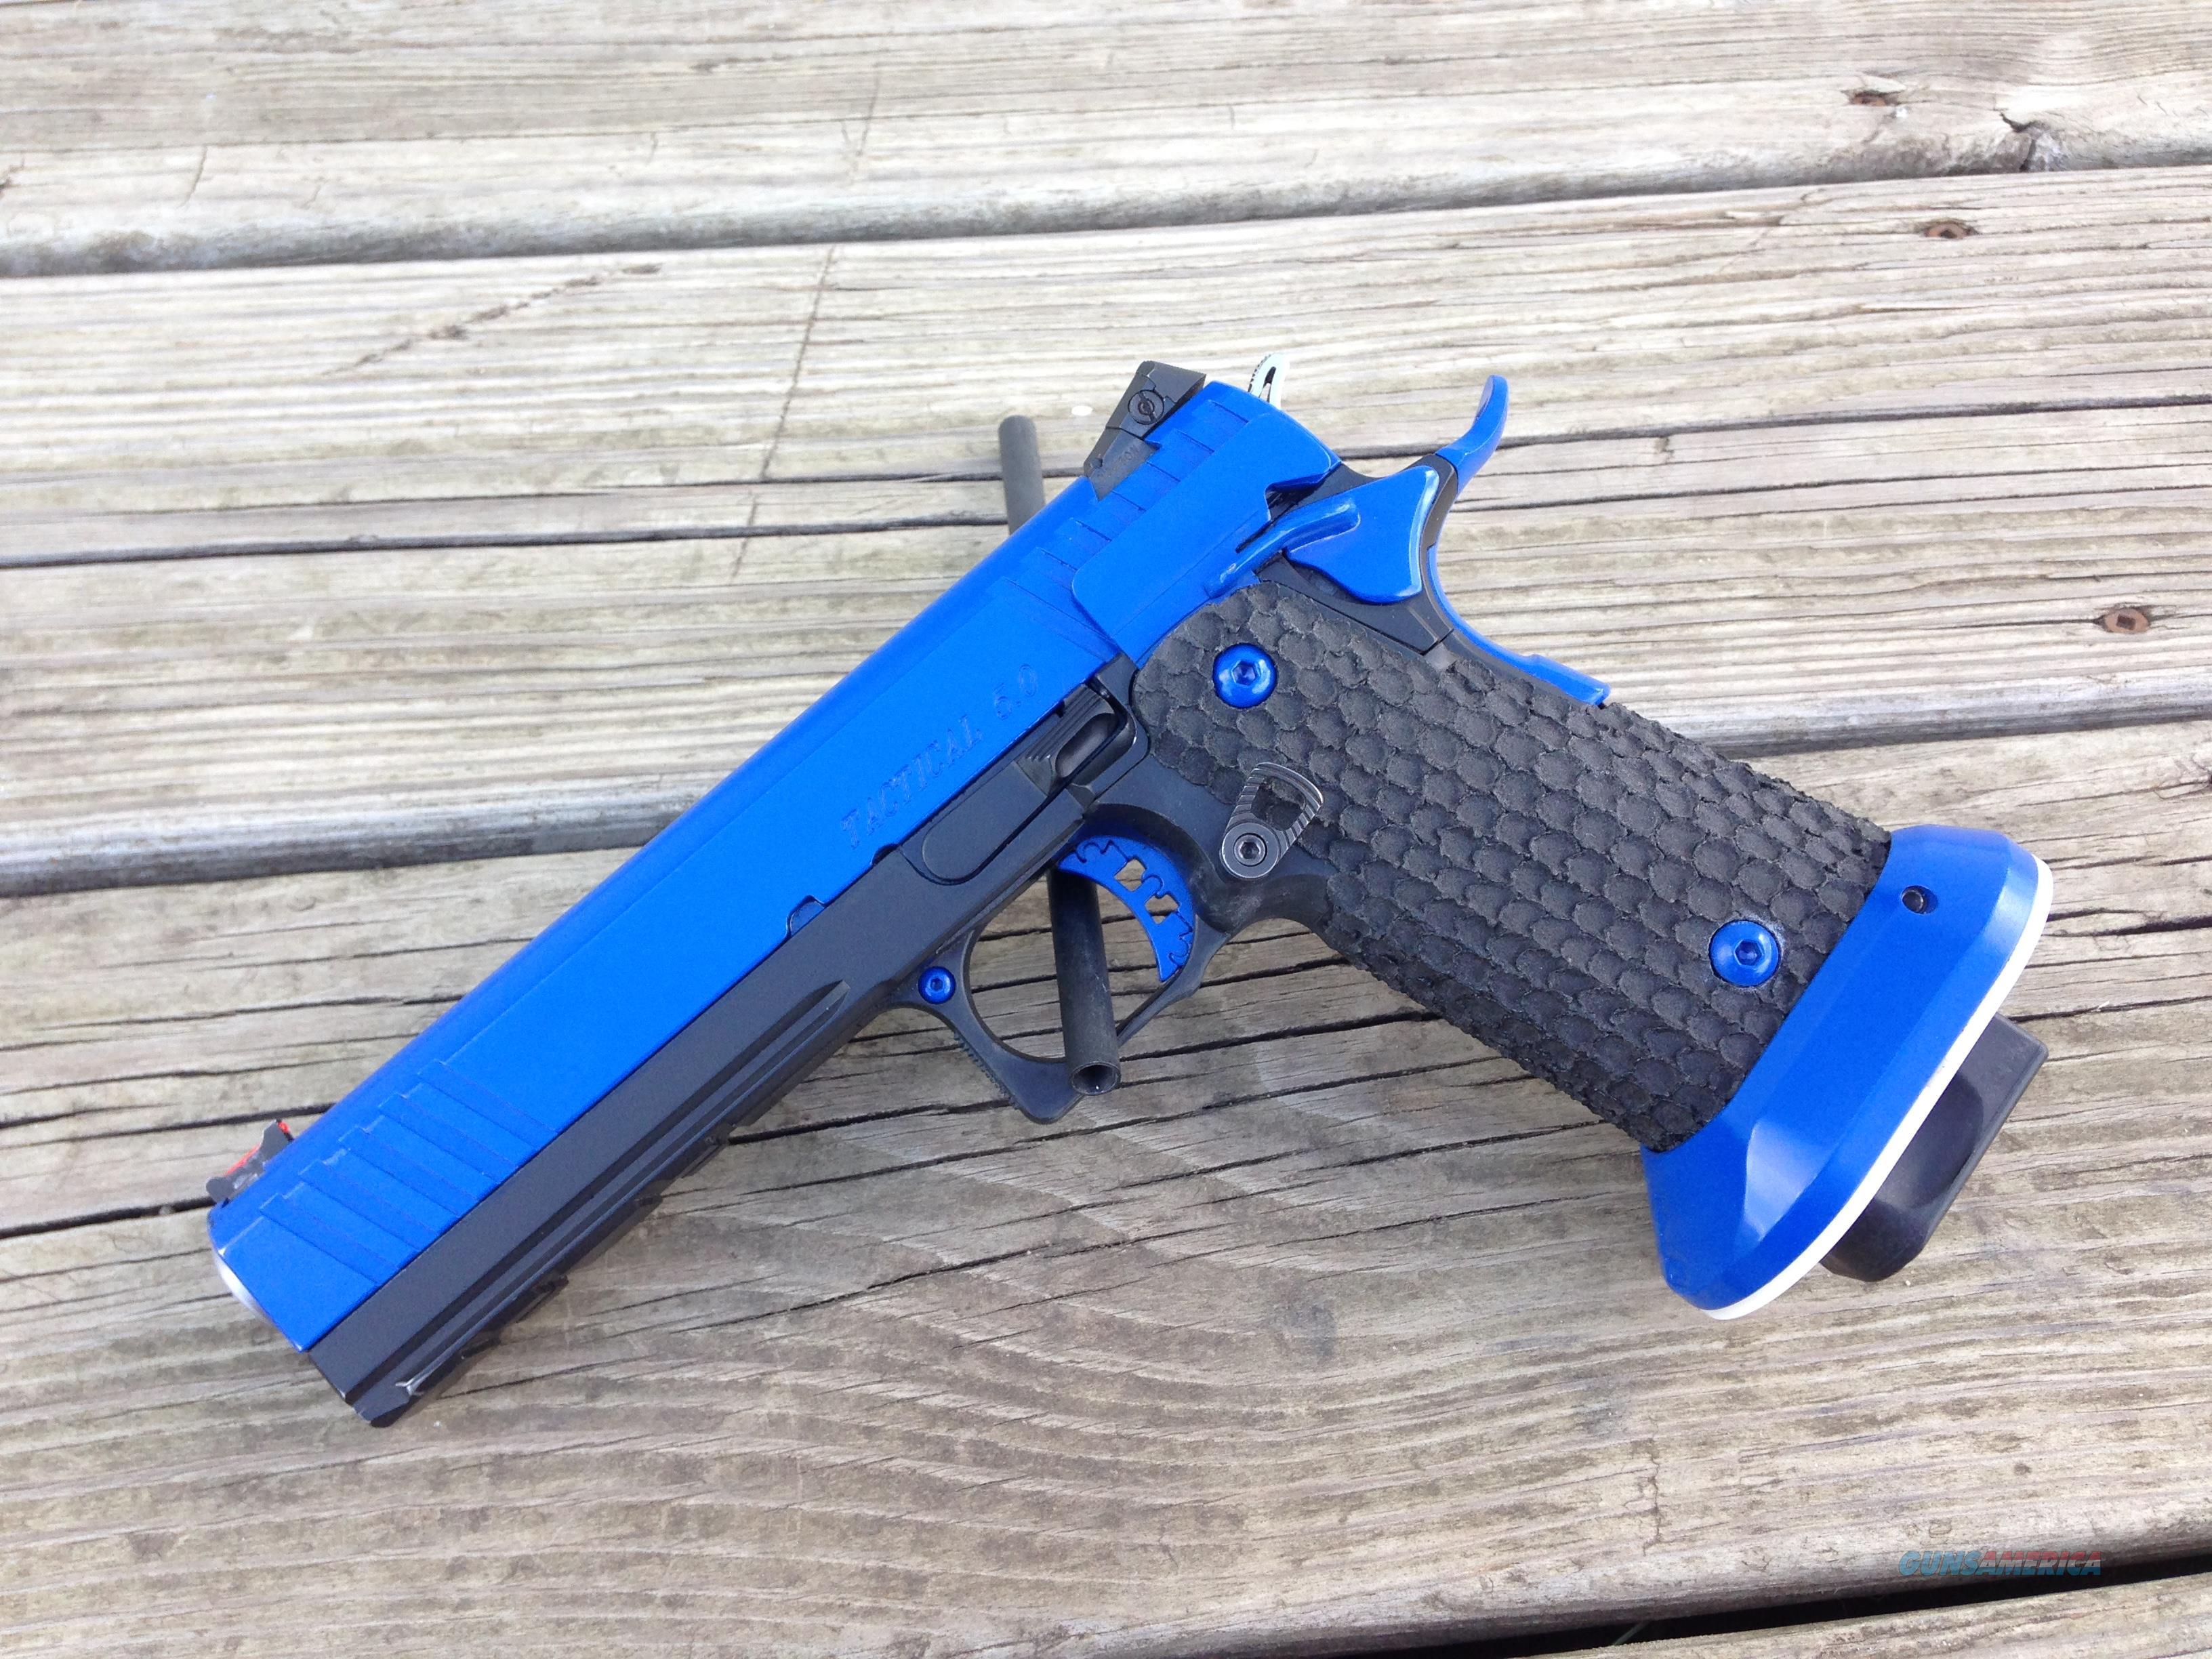 *Custom* STI 5.0 Tac 2011 9mm Competition Ready  Guns > Pistols > STI Pistols